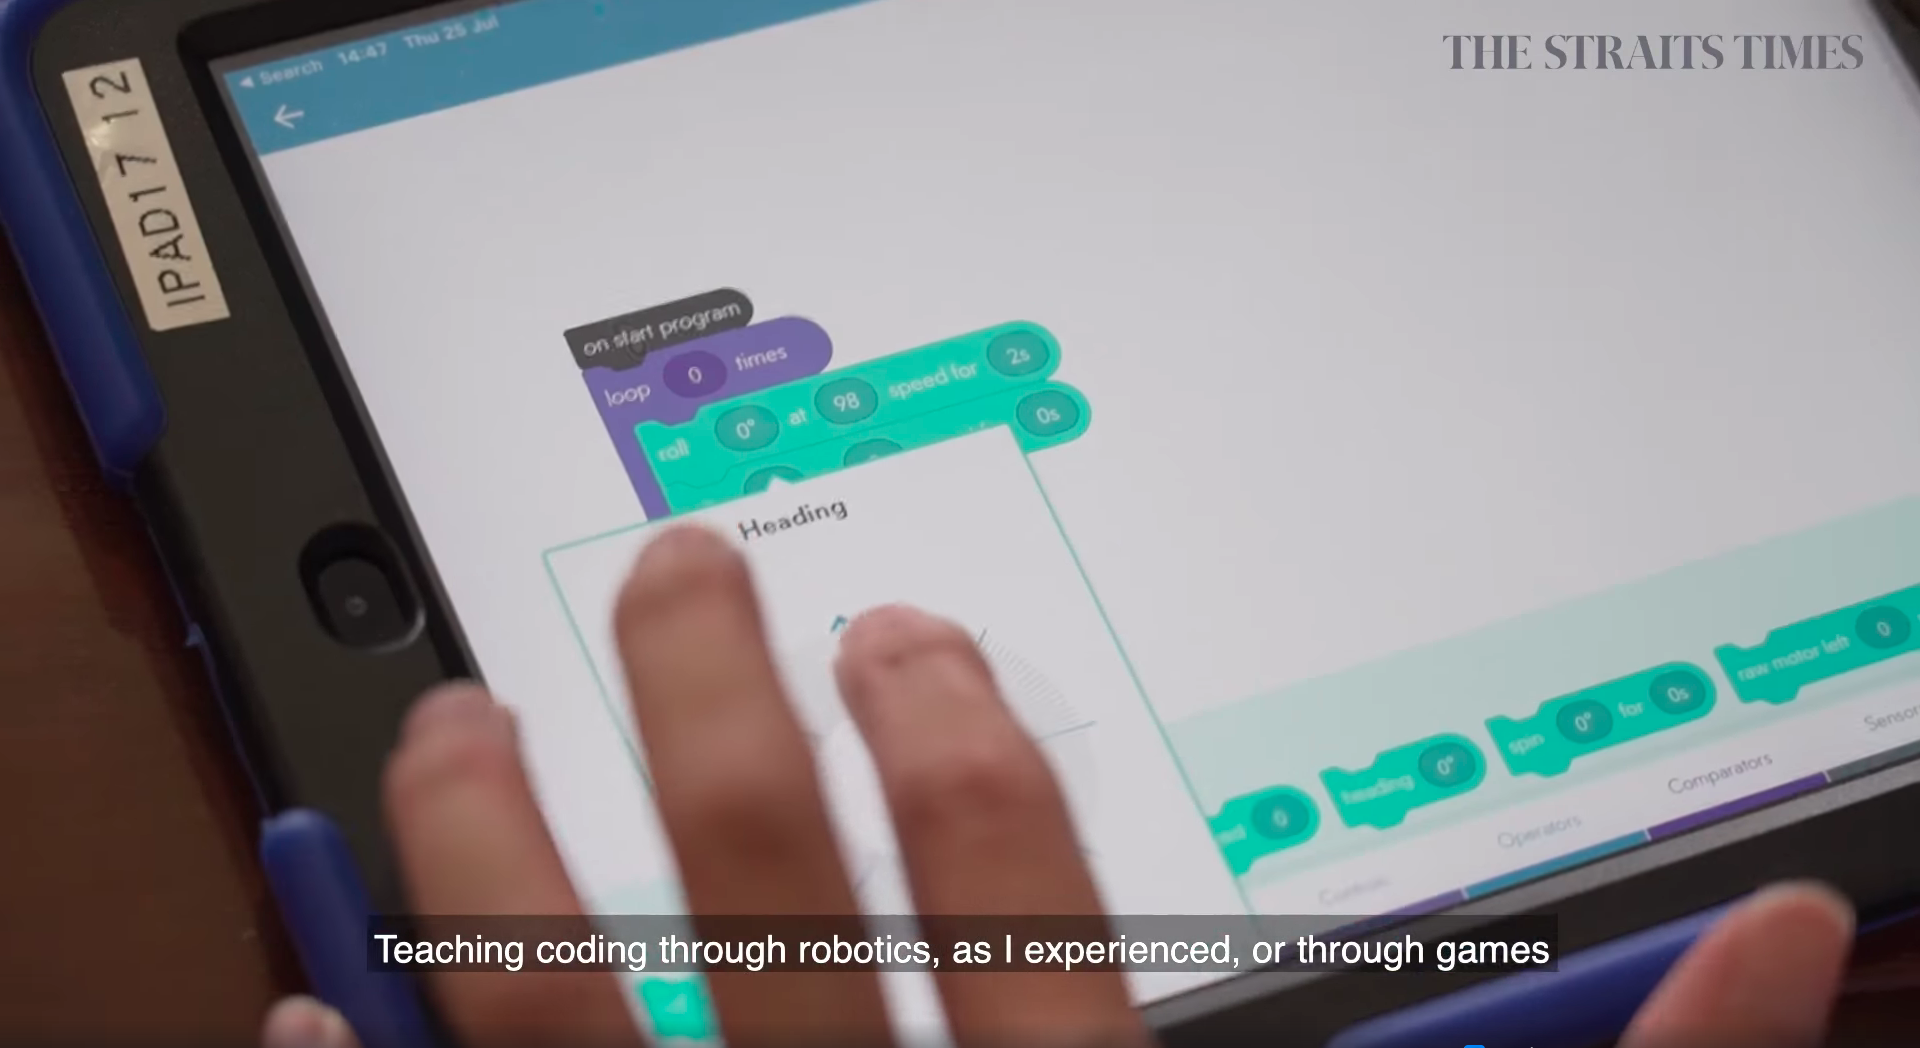 From next year, all upper primary school students will get to experience our Code For Fun enrichment programme. Curious to know what's in store? Click on the link below to watch a preview video by The Straits Times!